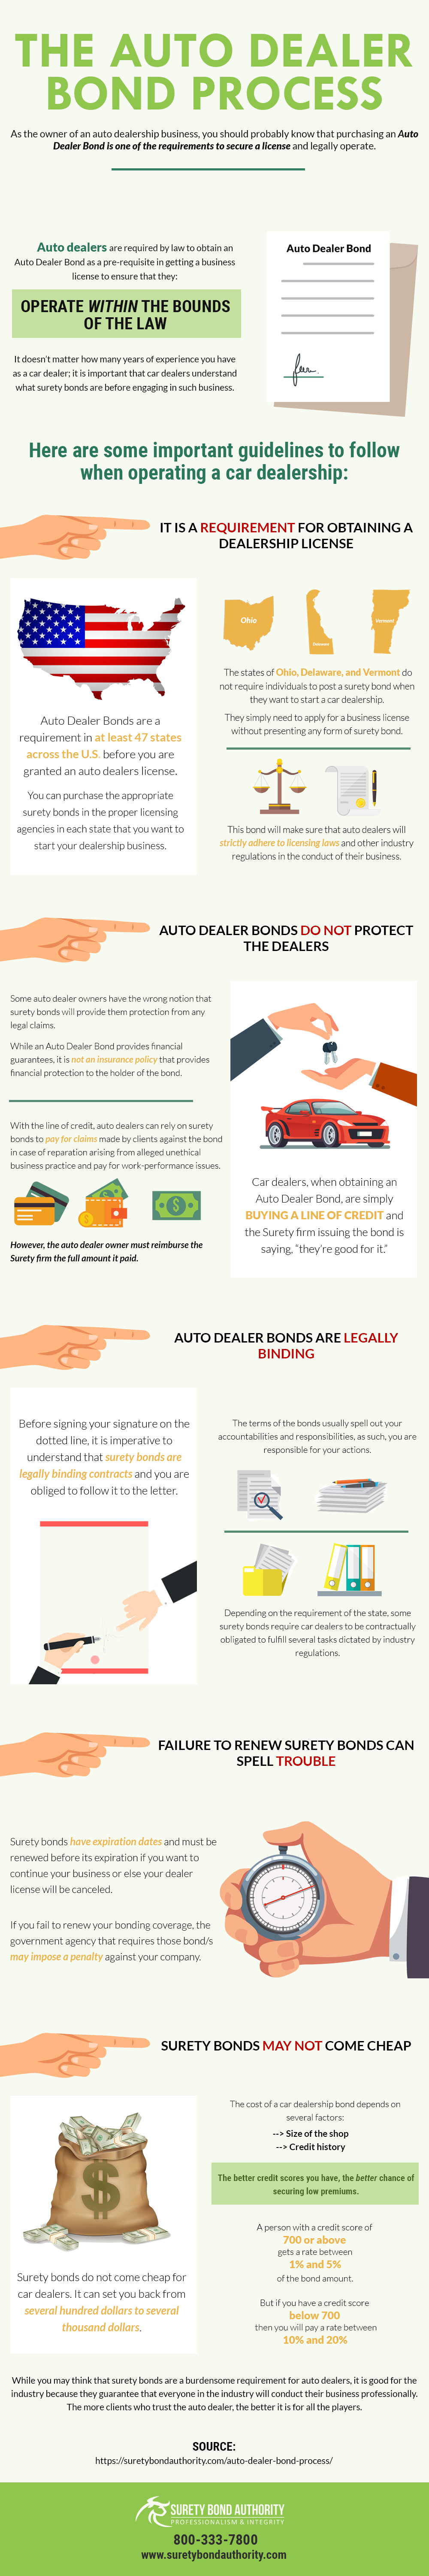 Auto Dealer Bond Process Infographic